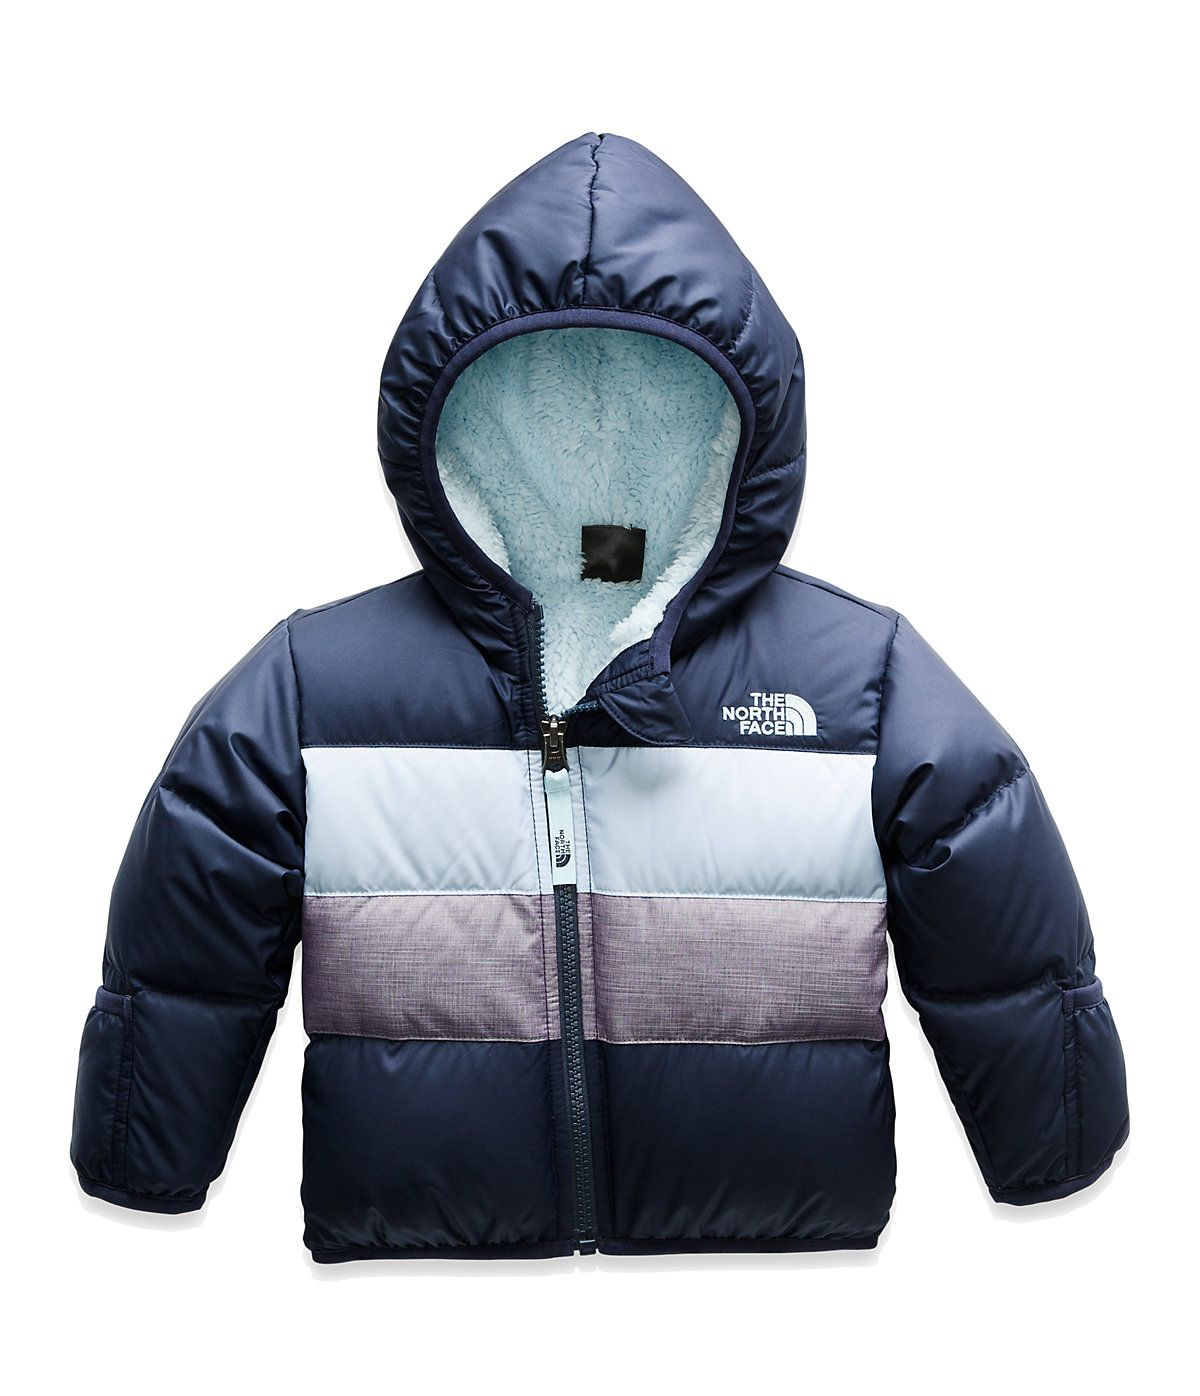 Infant Moondoggy 2 0 Down Jacket The North Face North Face Jacket The North Face Boy Outerwear [ 1396 x 1200 Pixel ]